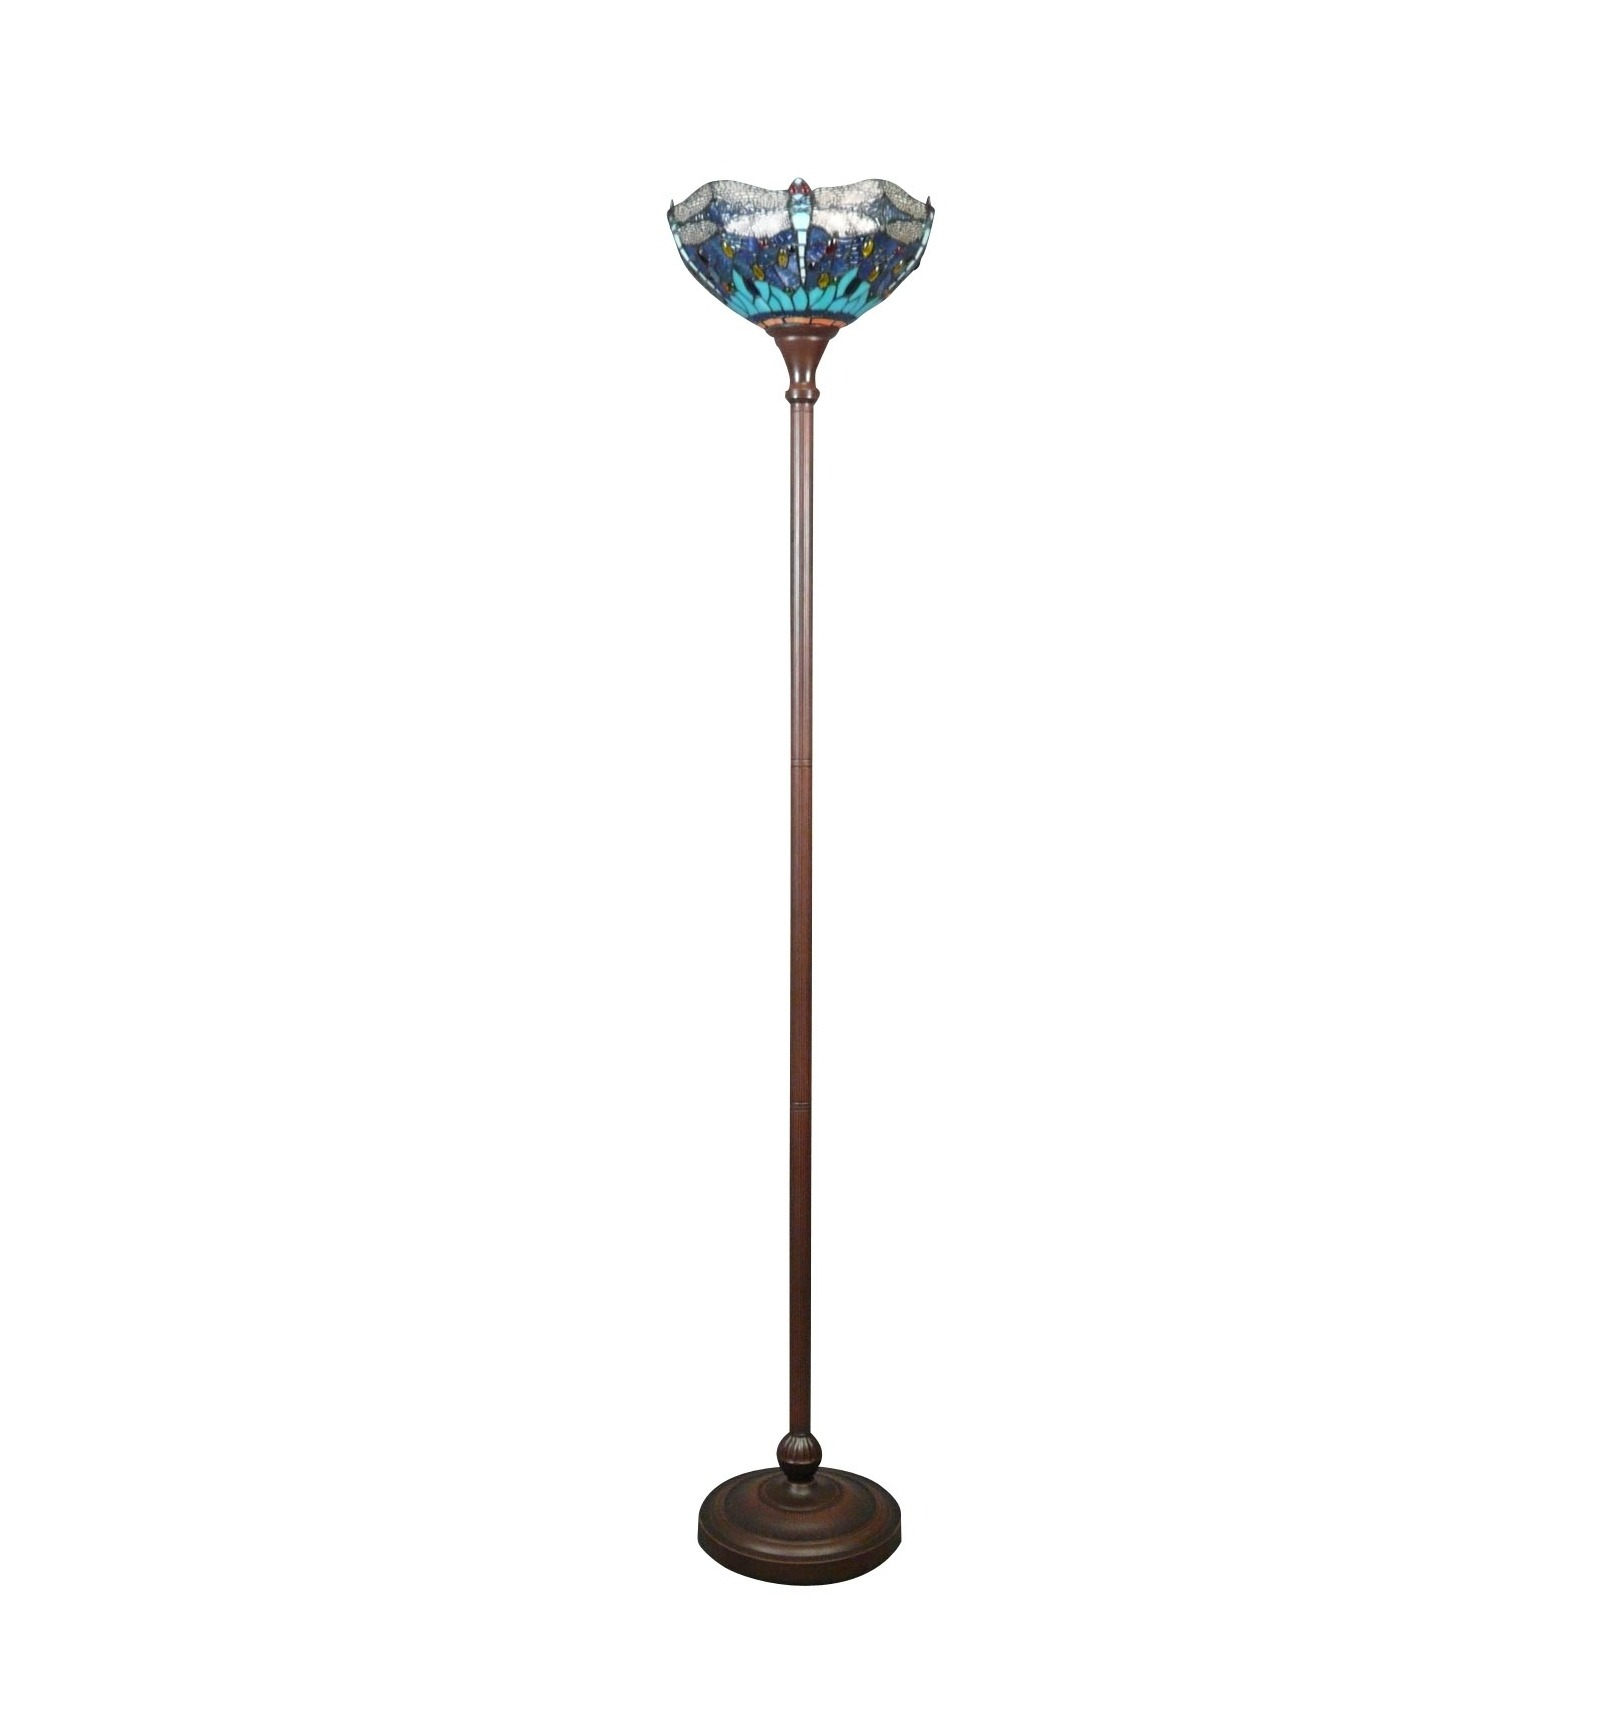 Tiffany floor lamp dragonfly blue and green tiffany lamps tiffany floor lamp dragonfly blue and green tiffany lamps shop mozeypictures Images